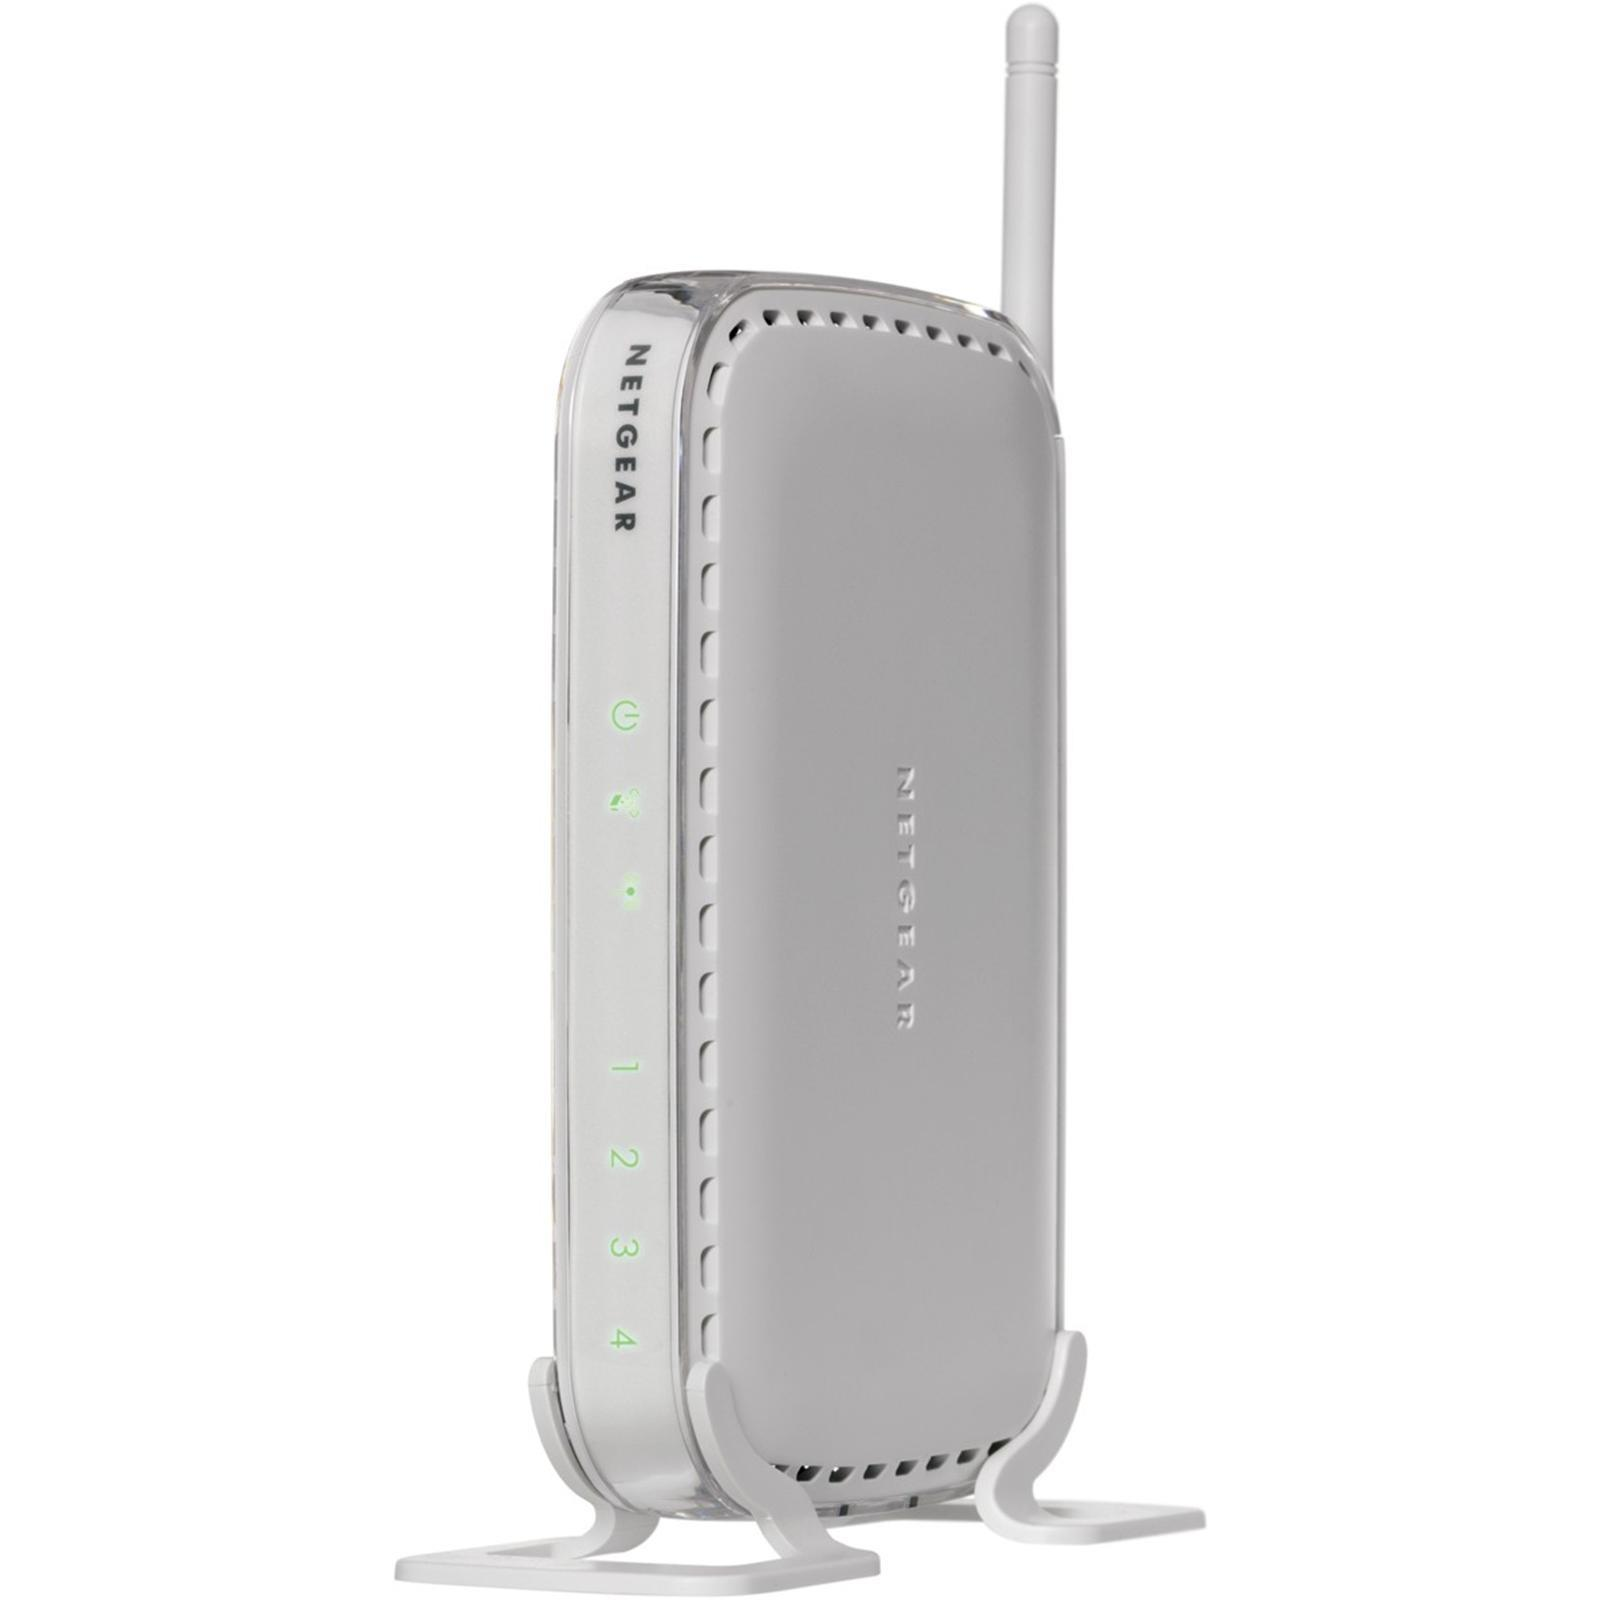 Netgear WN604 Wireless N 150Mbps Access Point